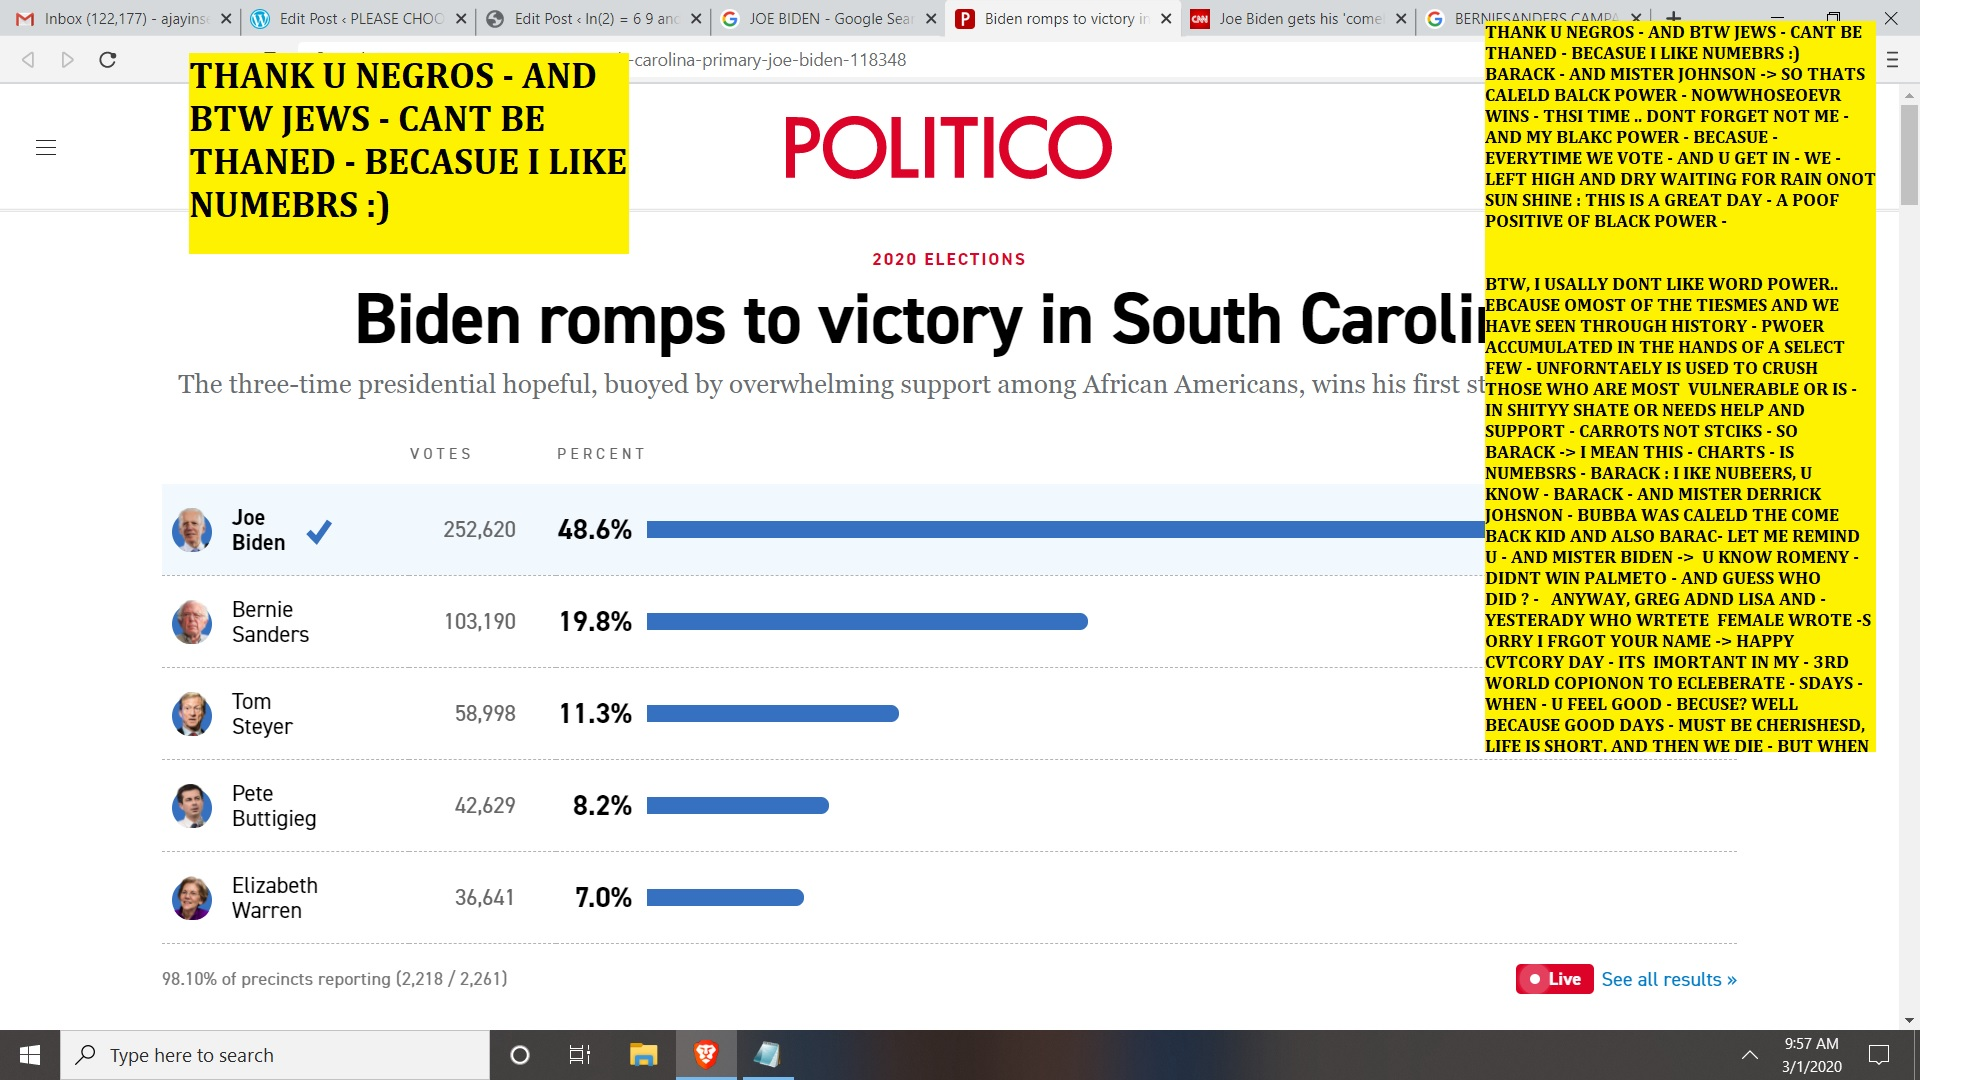 JOE BIDEN WINS - SOUT CAROLINA